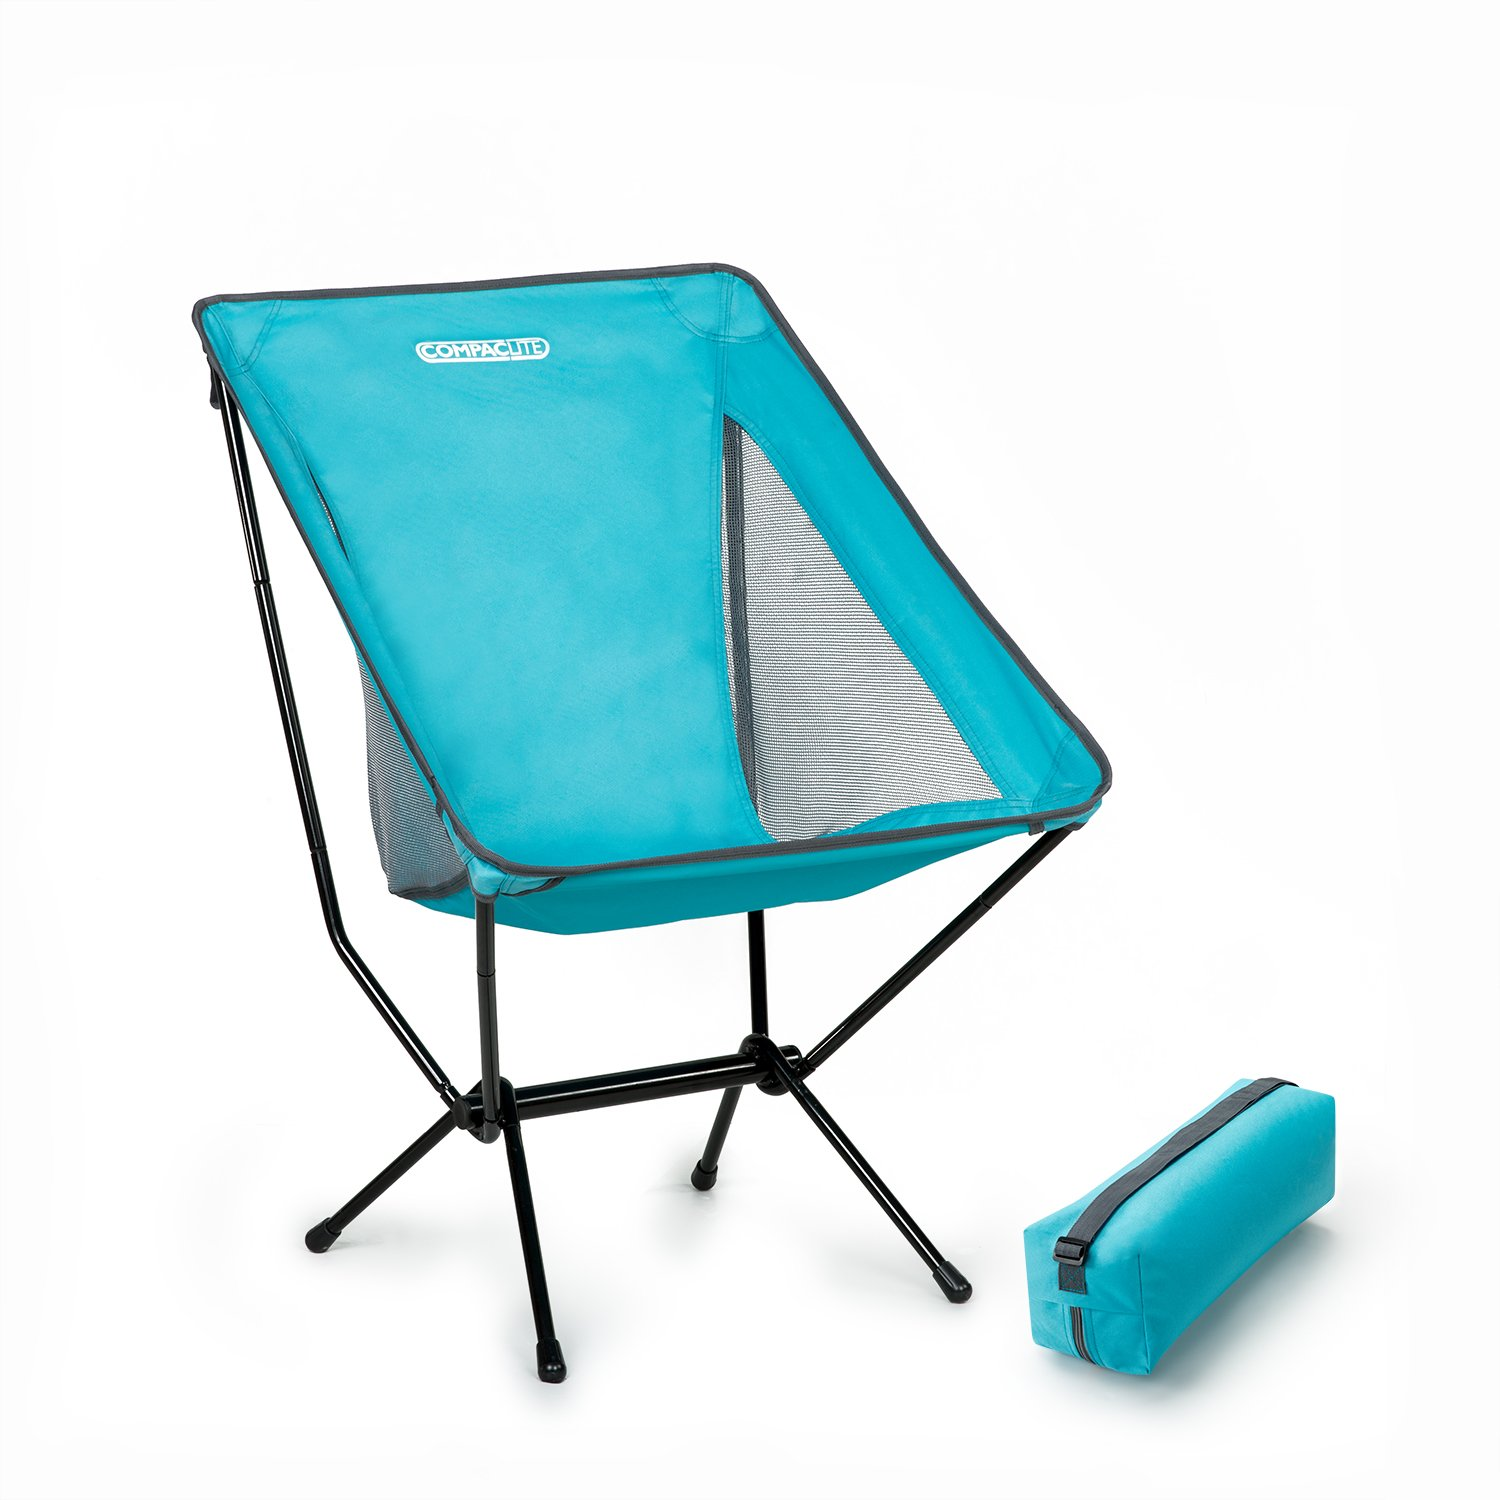 Compaclite Steel Camping Portable Chair with mesh Side Panels and Carry Bag, Deluxe - Bright Blue Sleep Revolution AMZ-13BM-BB